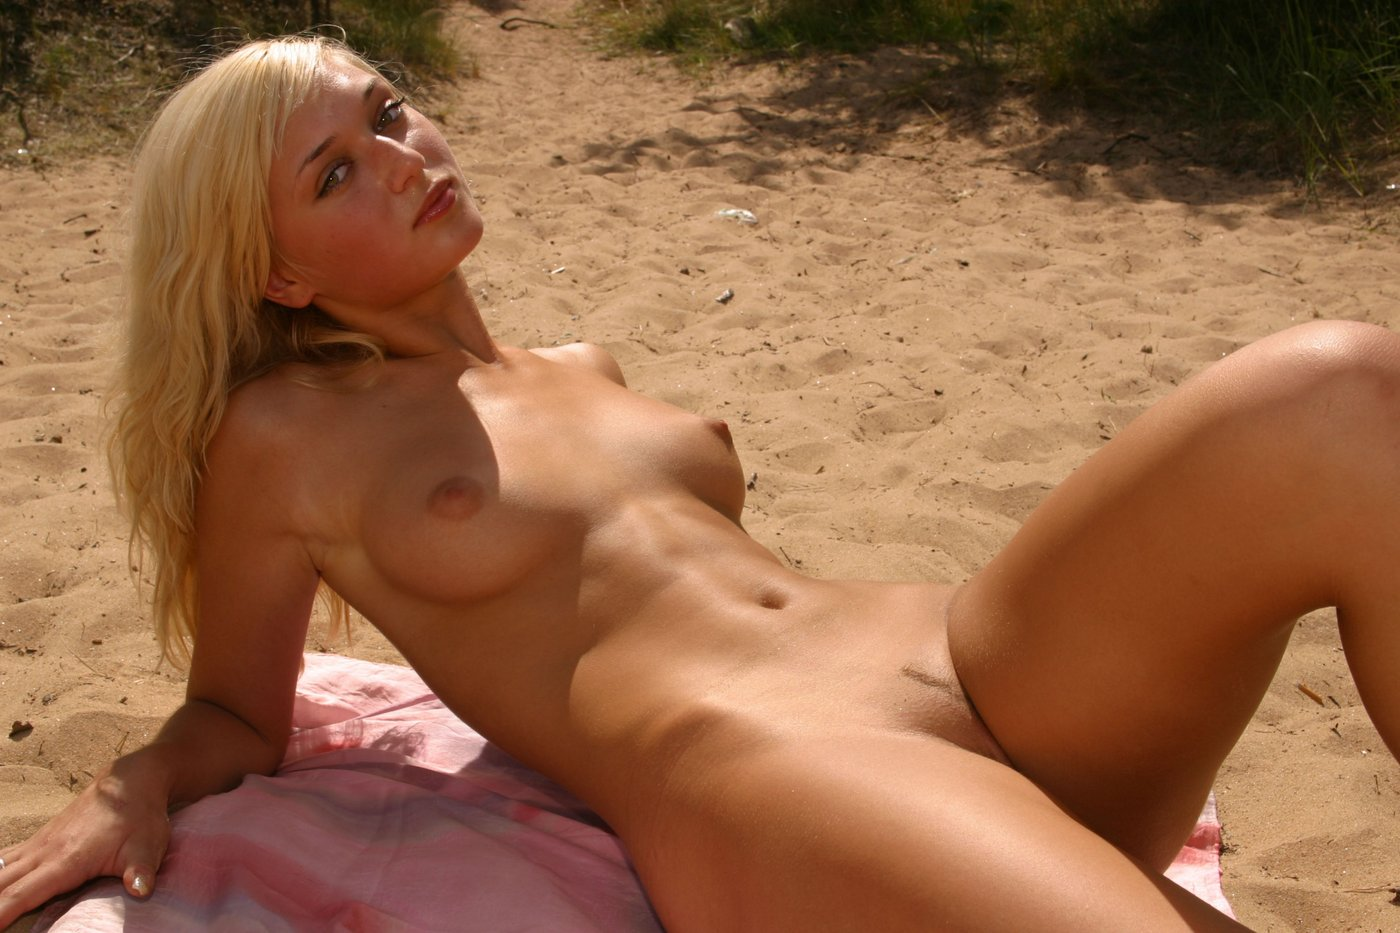 French pussy beach picture xxx photo